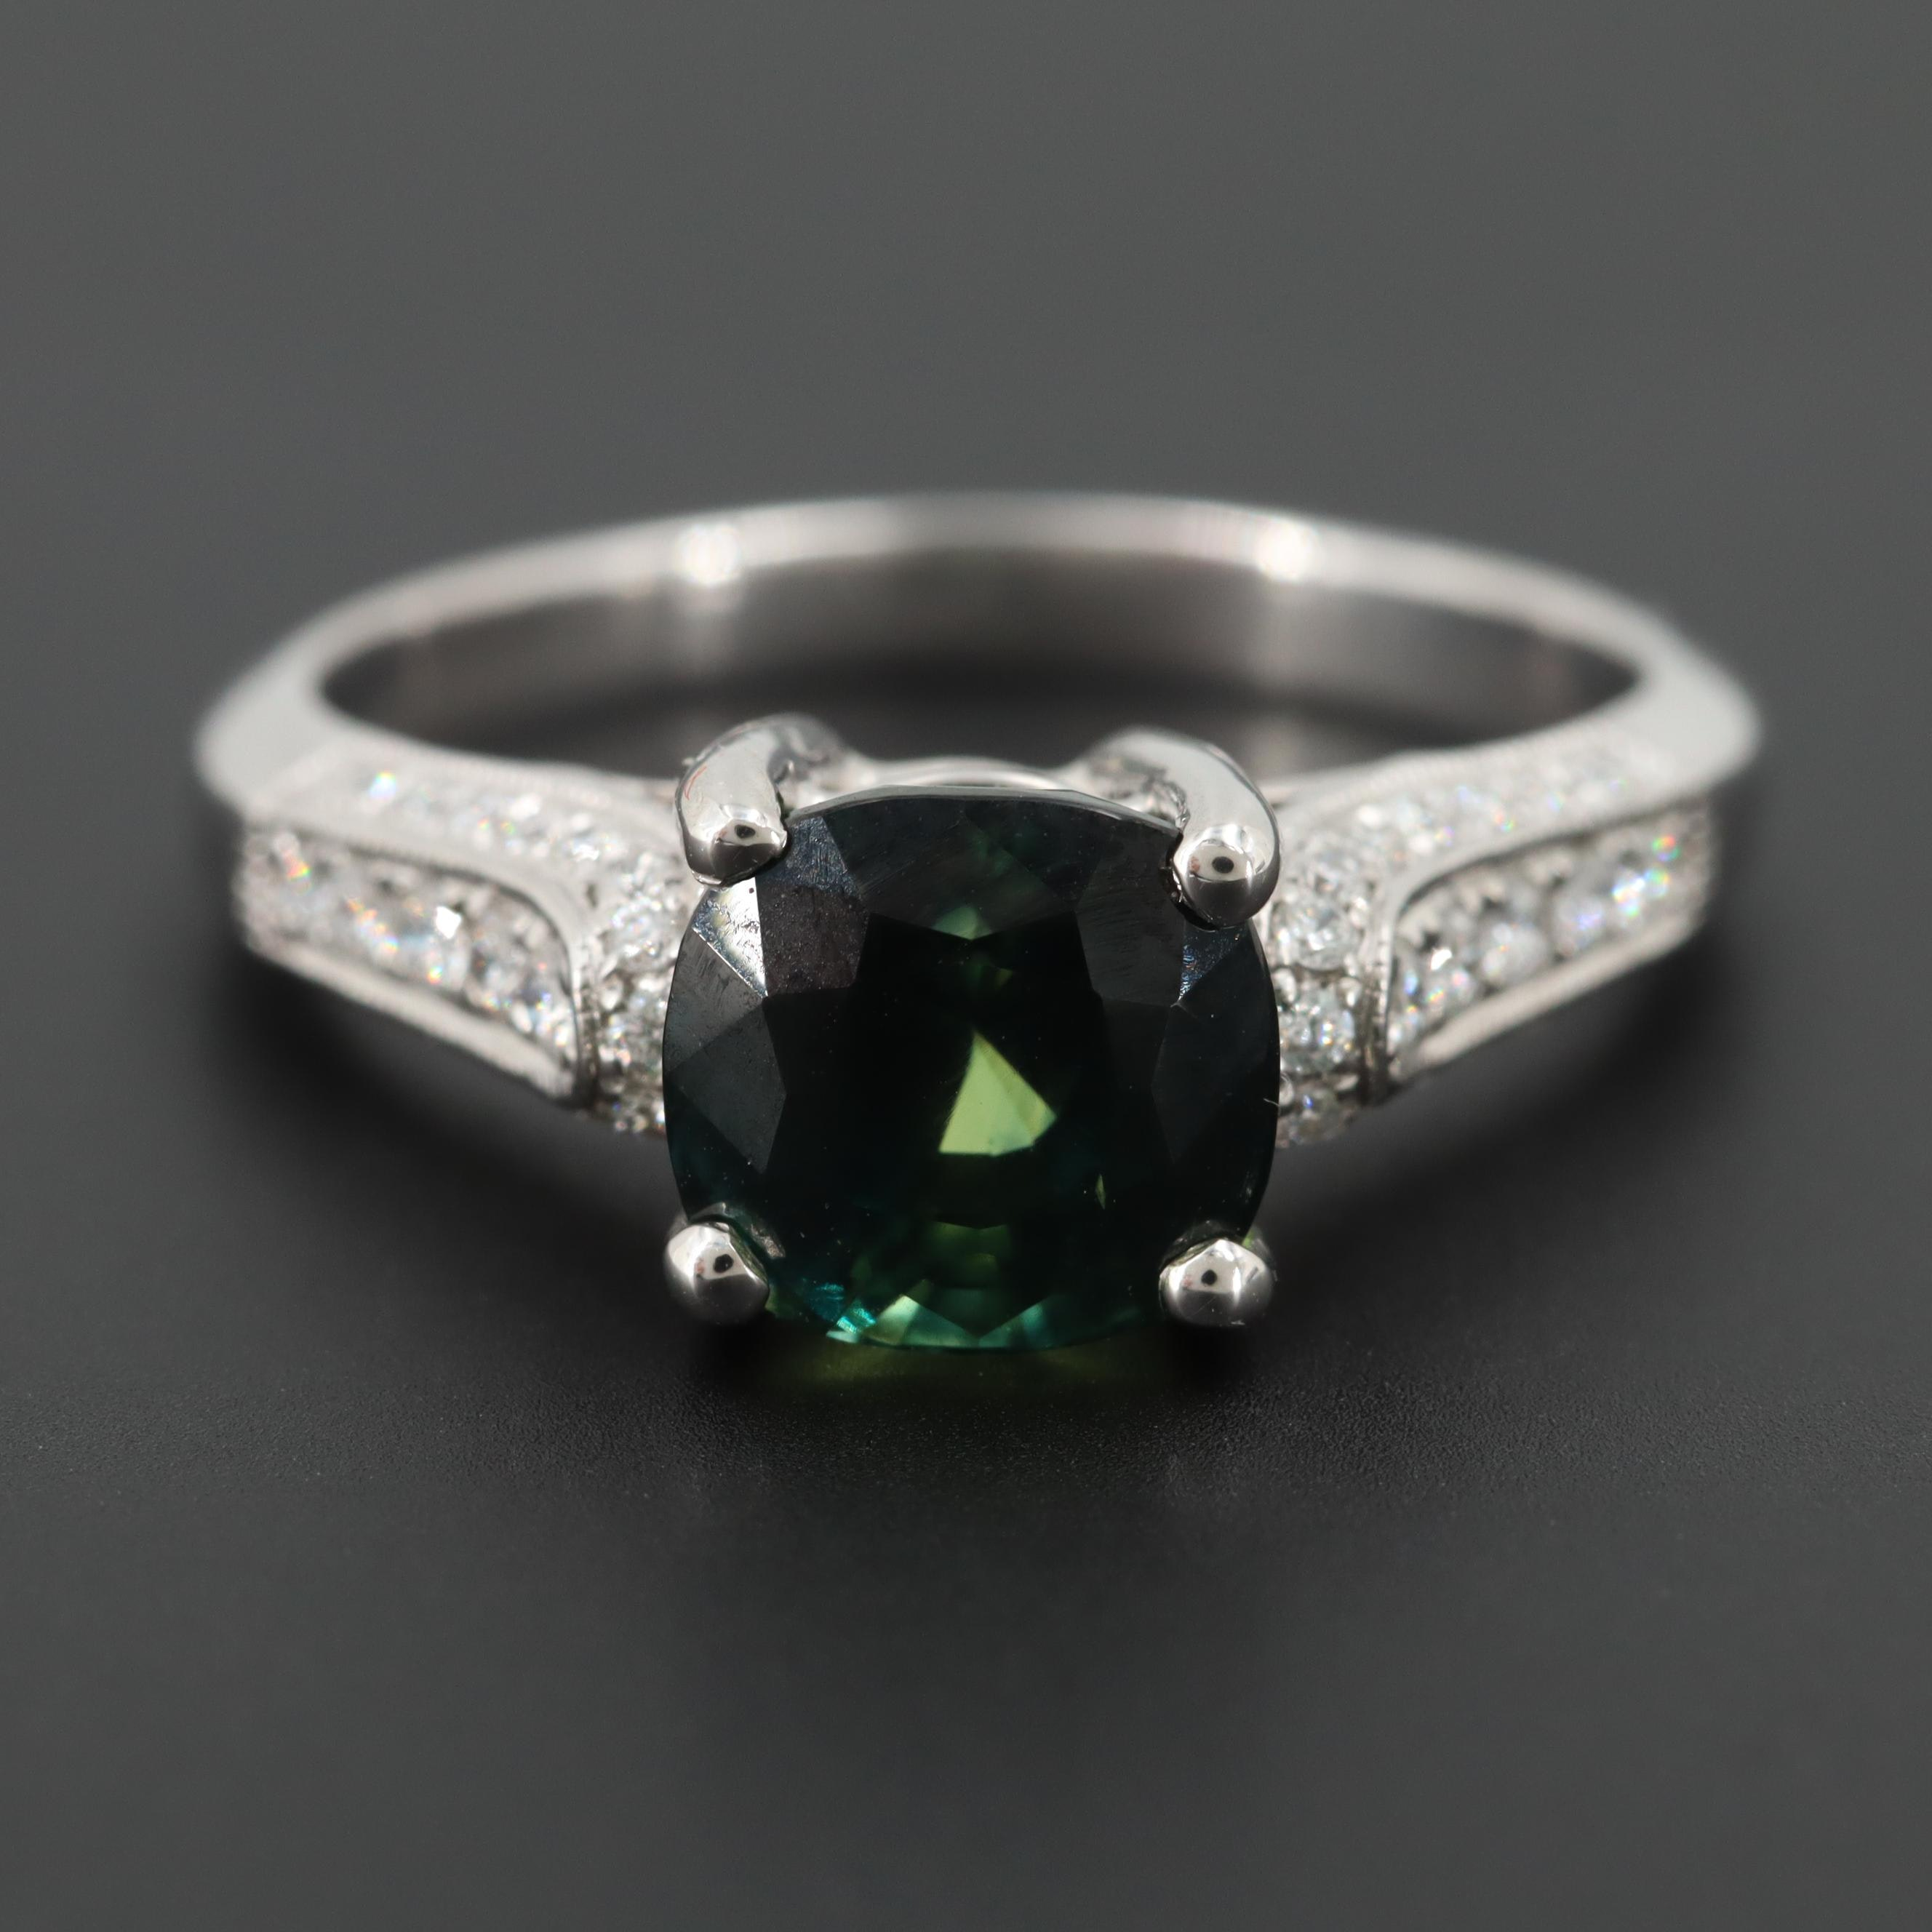 18K White Gold 2.80 CT Blue-Green Sapphire and Diamond Ring with GIA Report